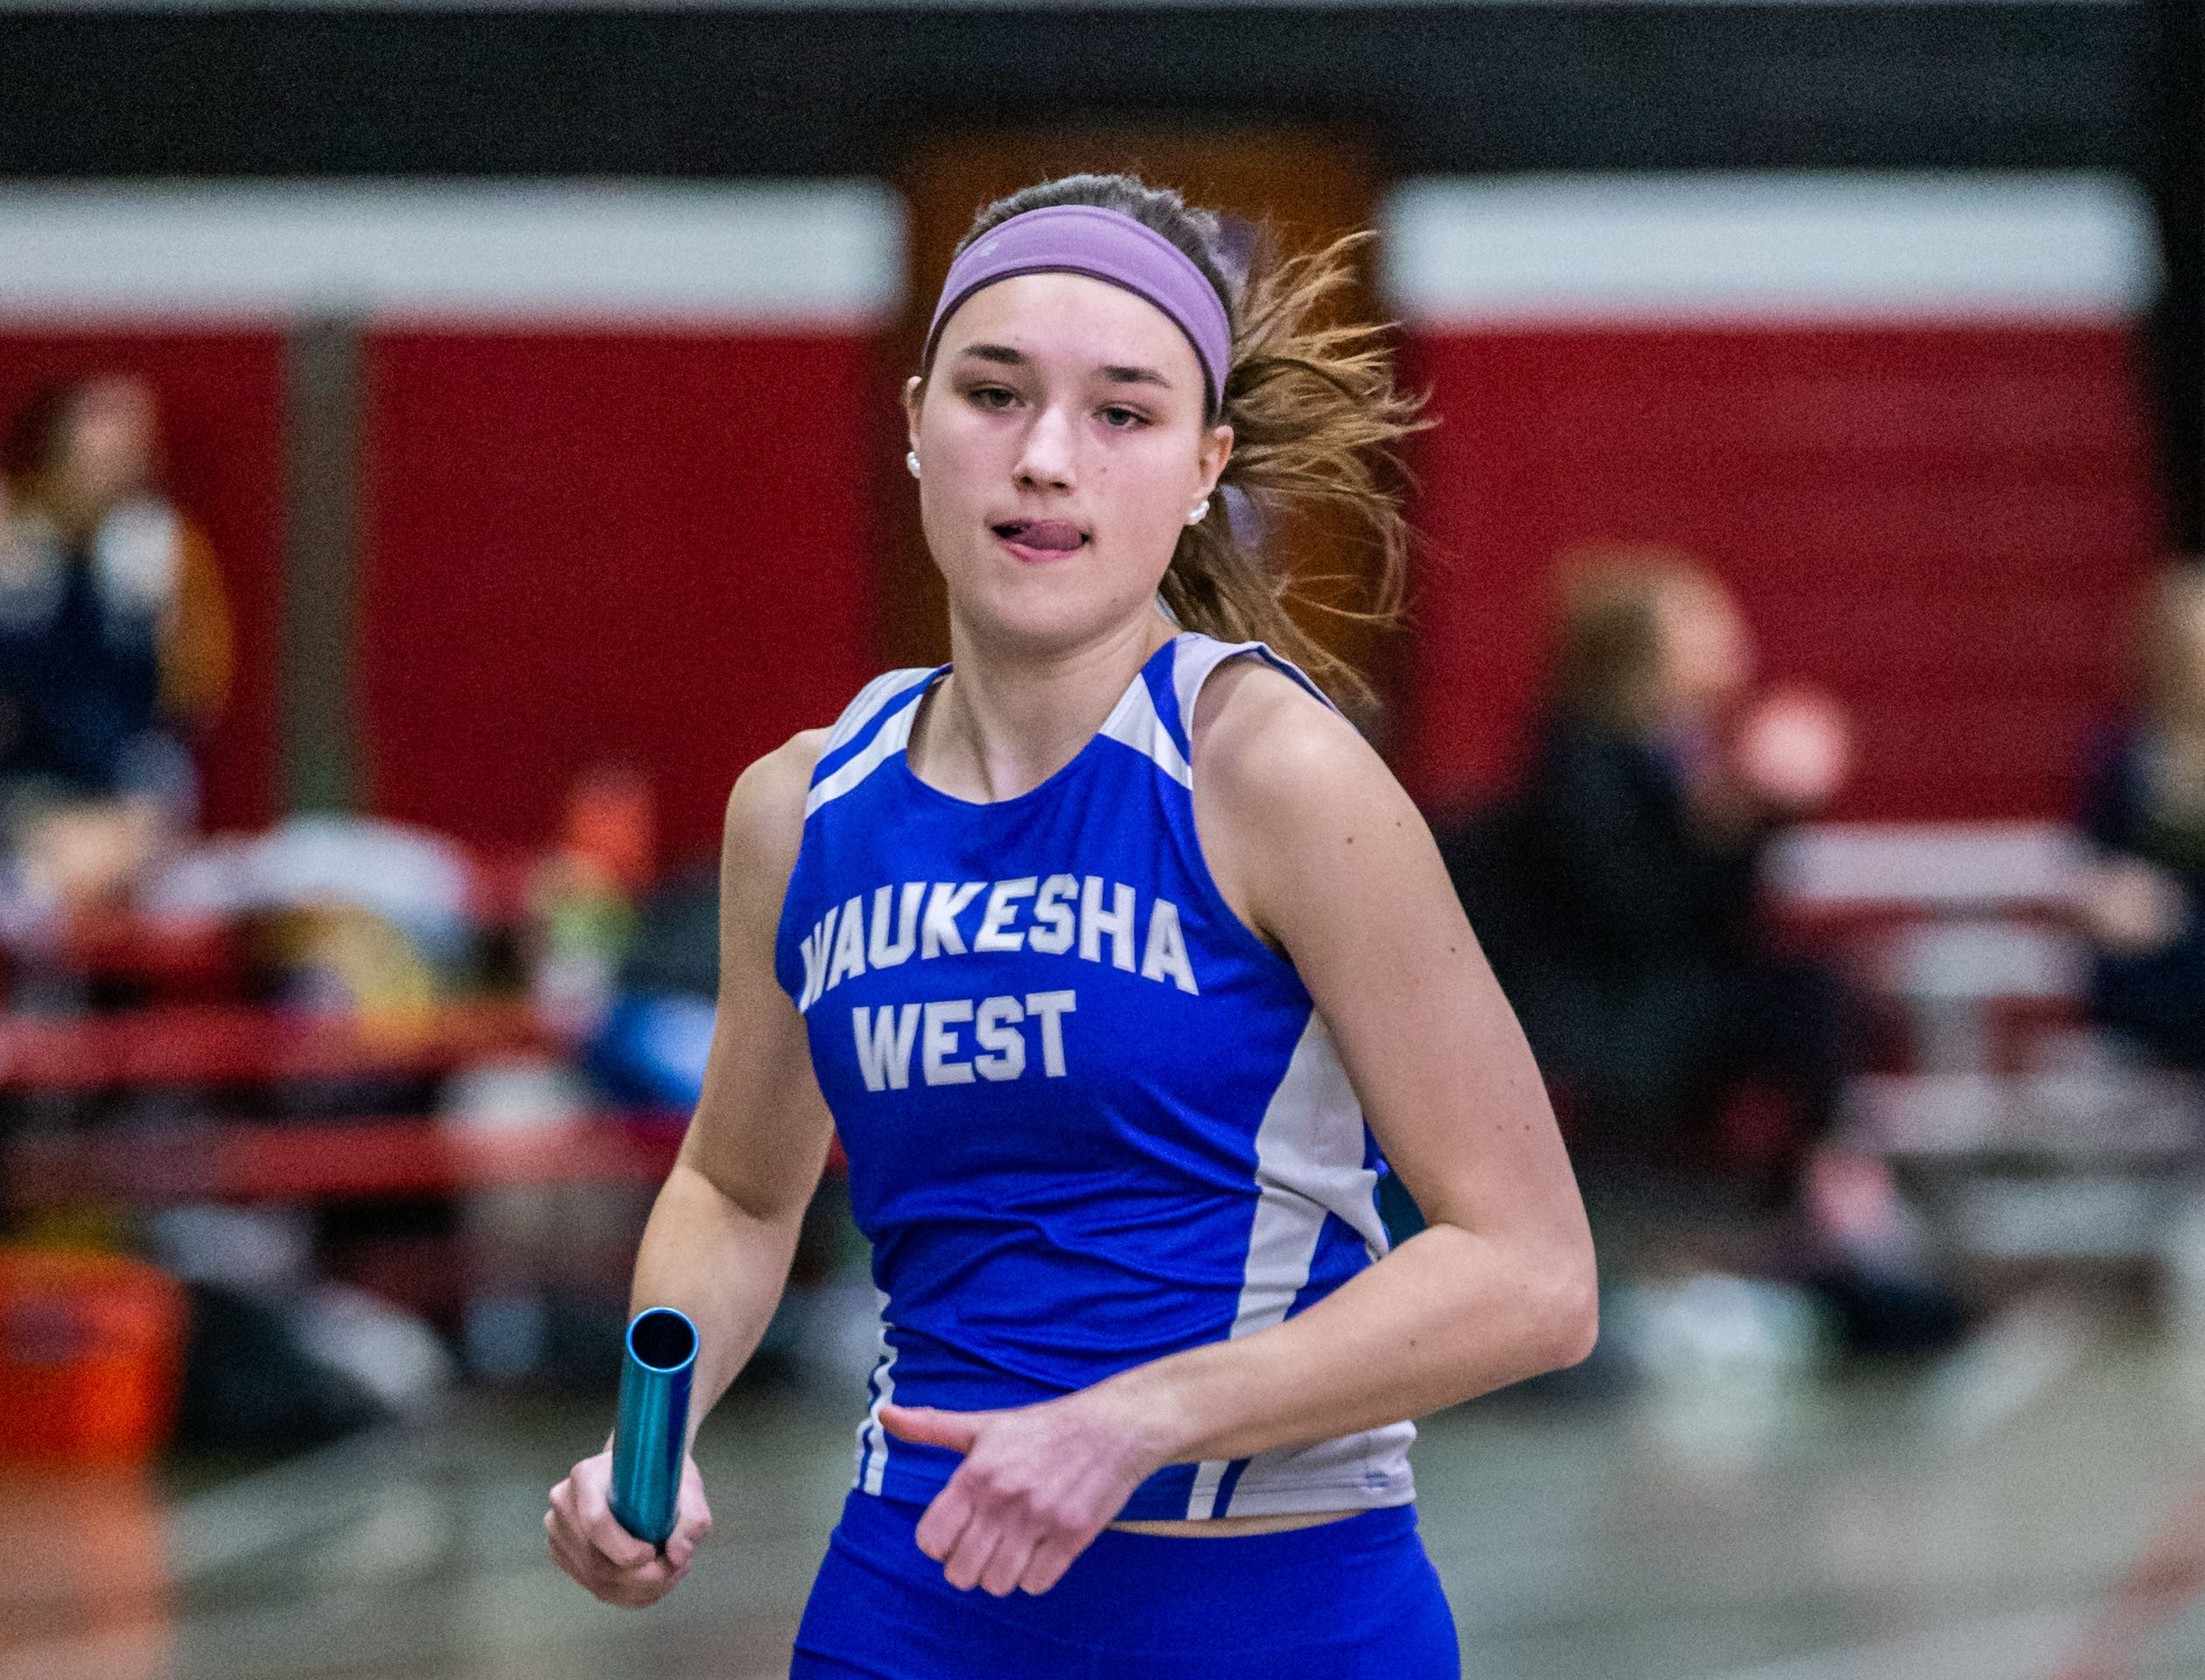 Waukesha West's Brooke Studnicki competes in the 4x440 yard relay at the Peter Rempe Cardinal Relays hosted by Waukesha South on Thursday, March 21, 2019. West won the event with a time of 4:21.90.